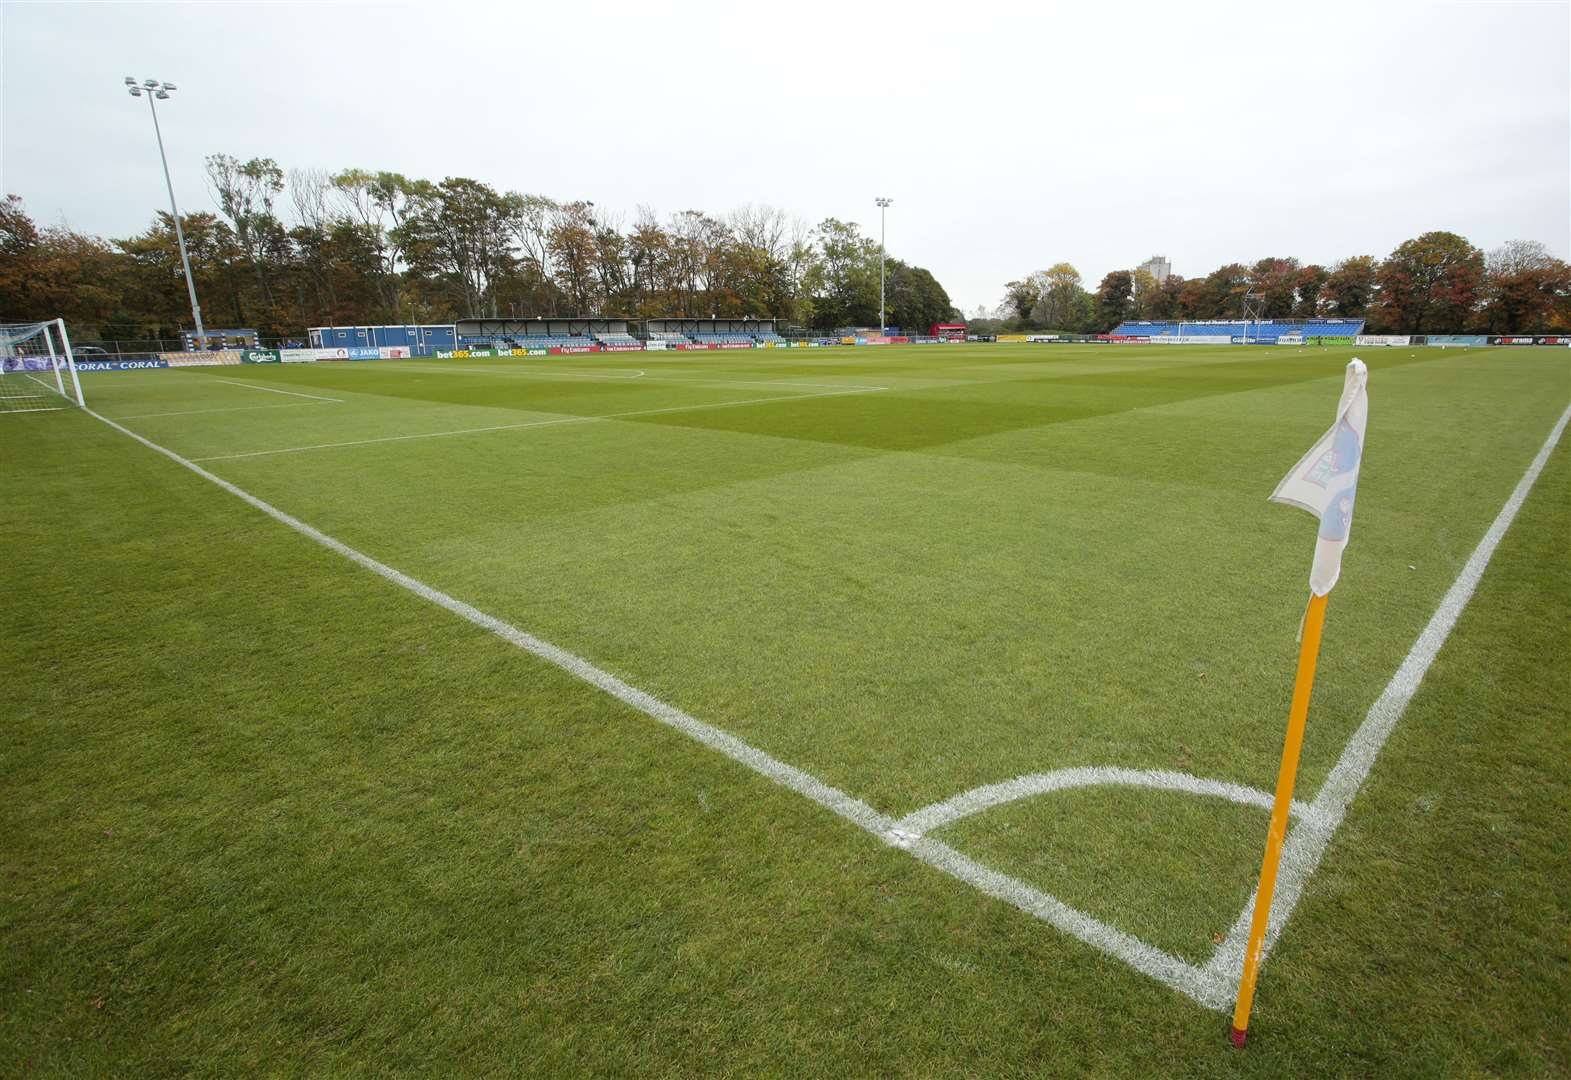 Club's new ground work 'to start in summer'